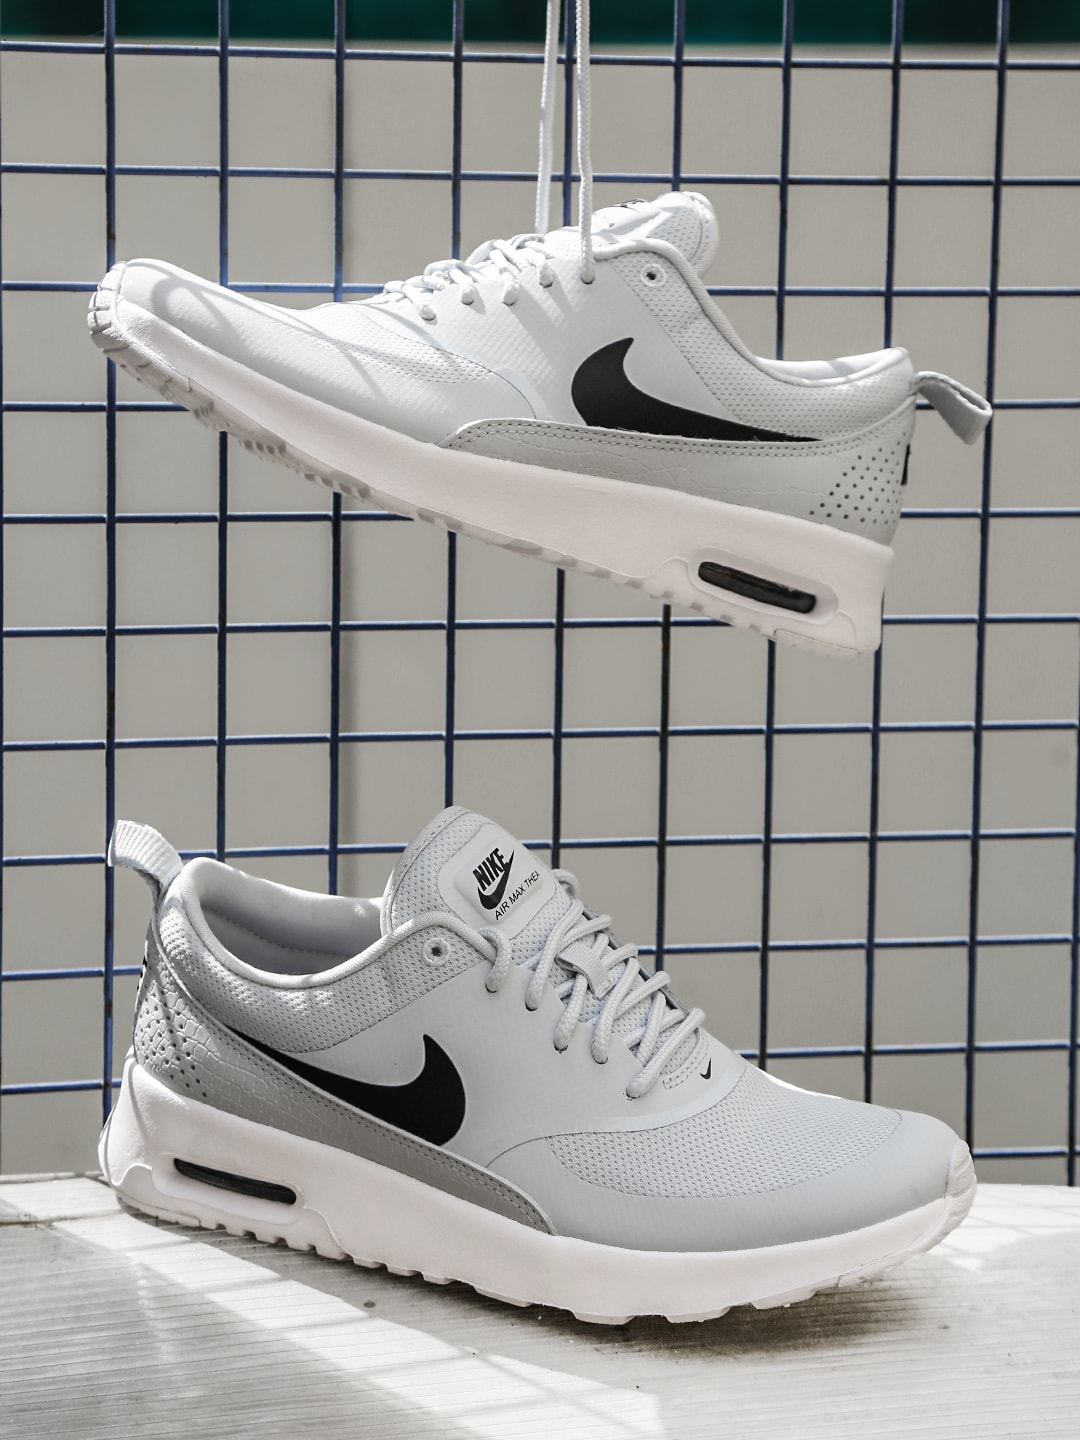 new product 03dda 6596b Nike Air Max - Buy Nike Air Max Shoes, Bags, Sneakers in India